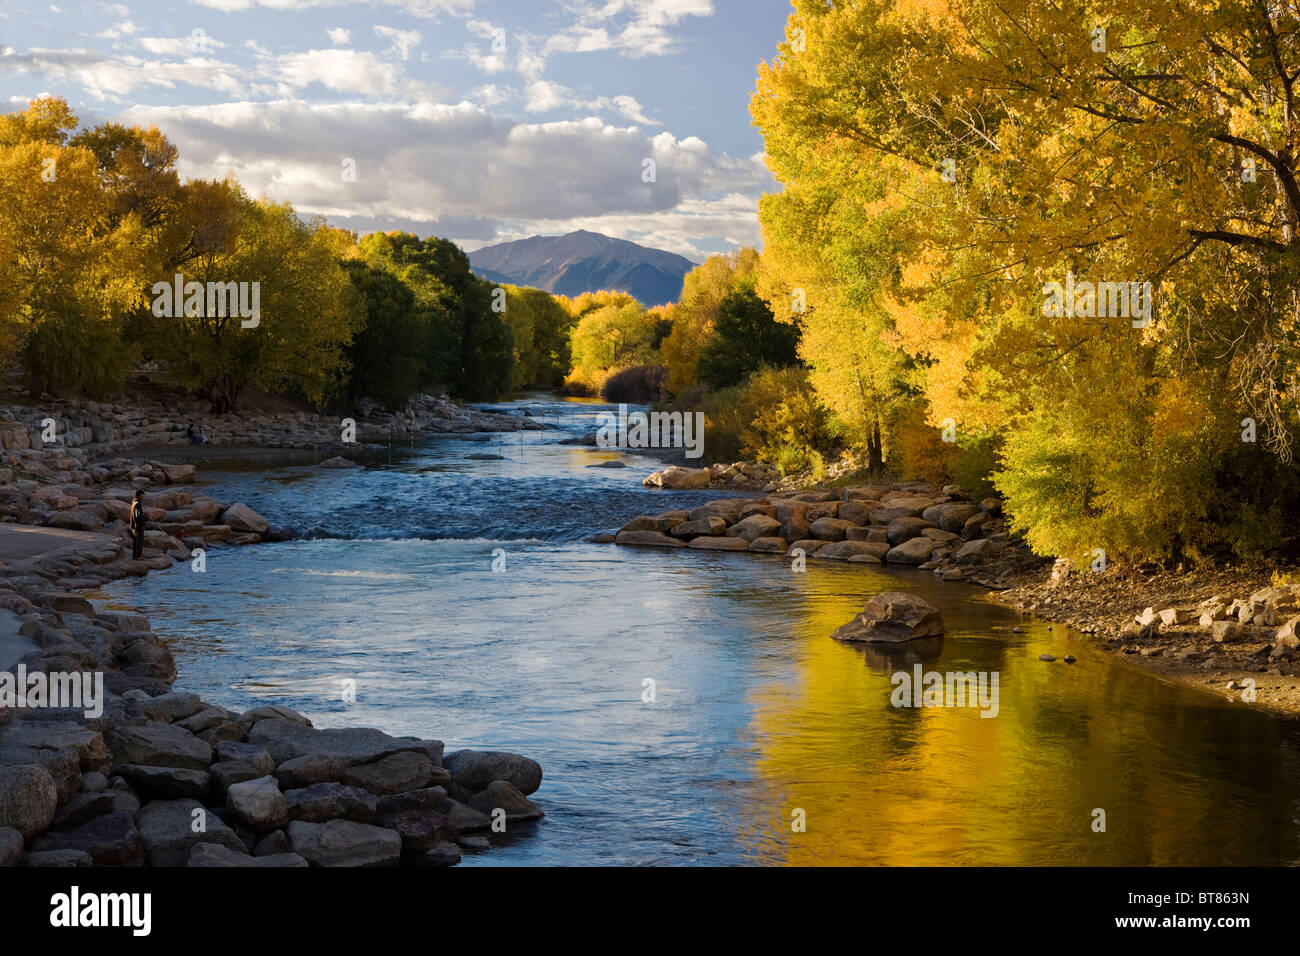 Autumn view of fall colors along the Arkansas River in the small mountain town of Salida, Colorado, USA - Stock Image